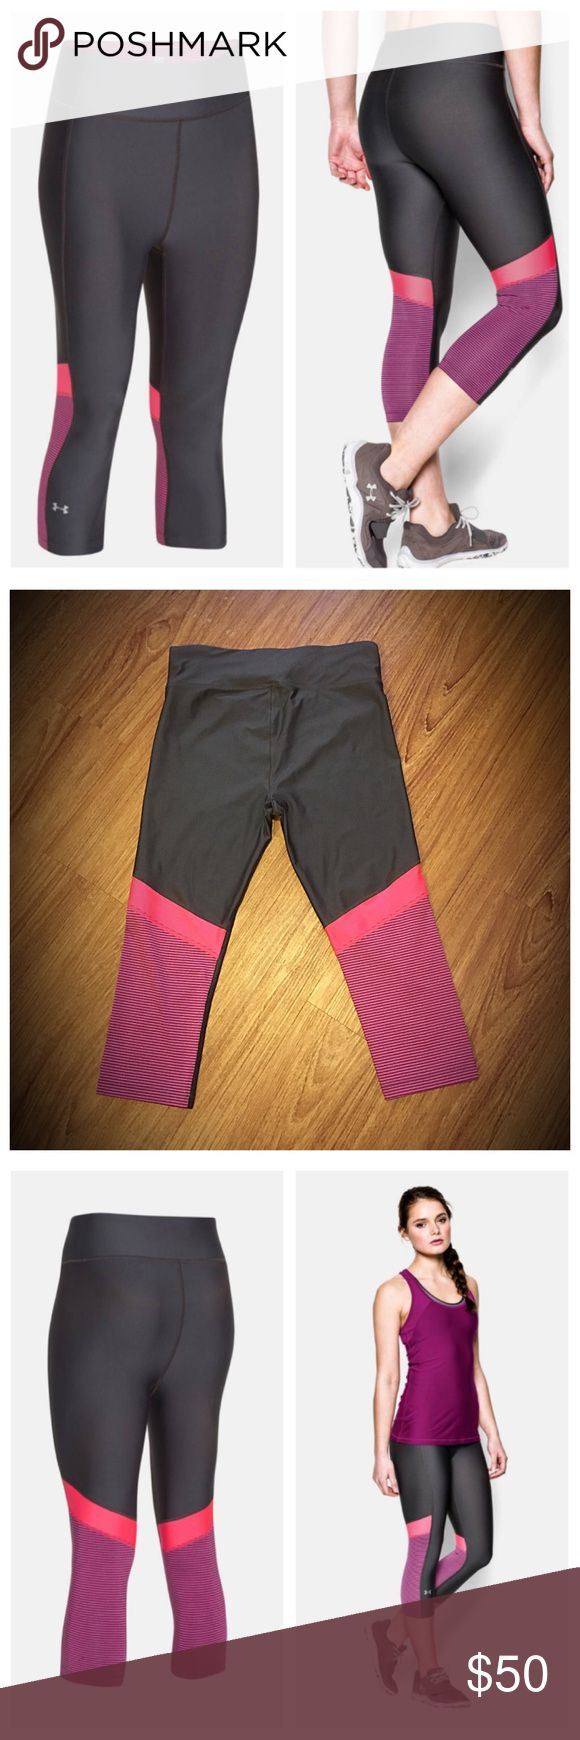 """Under Armour Heatgear gray/purple/neon coral Capri 📦Same day shipping (as long as P.O. is open for business). ❤ Measurements are approximate. Descriptions are accurate to the best of my knowledge.  Ultra tight 2nd skin compression. Light weight moisture wicking 4-way stretch fabric. Anti-microbial technology. 13.5"""" waist, 18.5"""" inseam, 10"""" rise from top of crotch seam. No pilling/holes/stains. See close-up photo of small manufacture defect where section of thread seam is missing (less than…"""